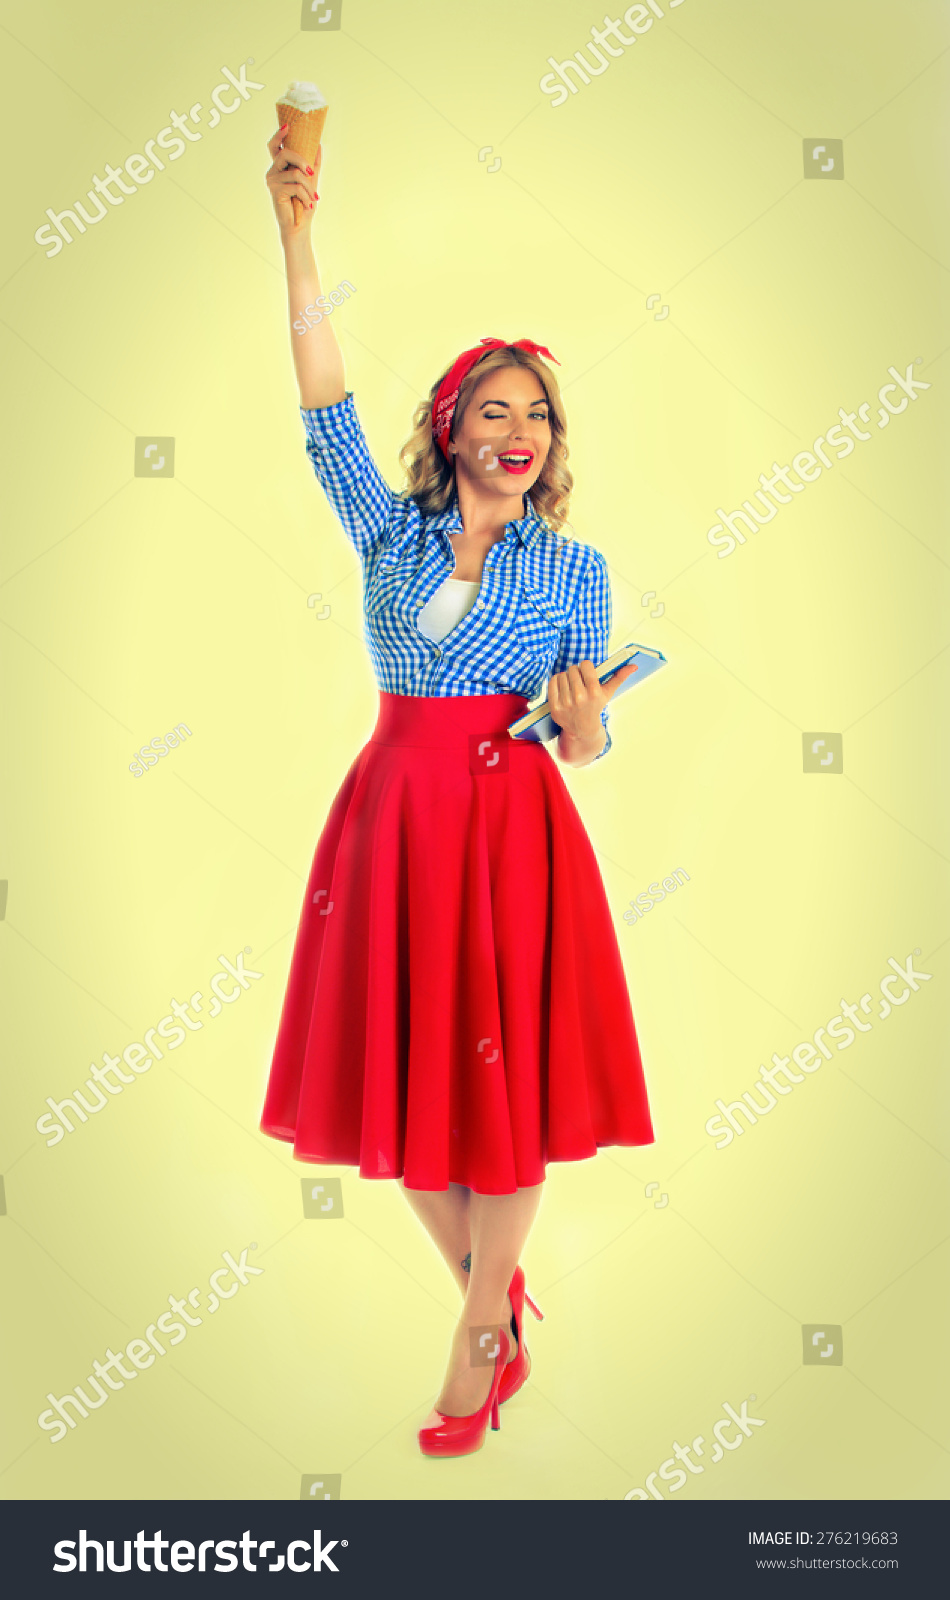 blonde pose statue liberty on white stock photo 276219683 shutterstock. Black Bedroom Furniture Sets. Home Design Ideas